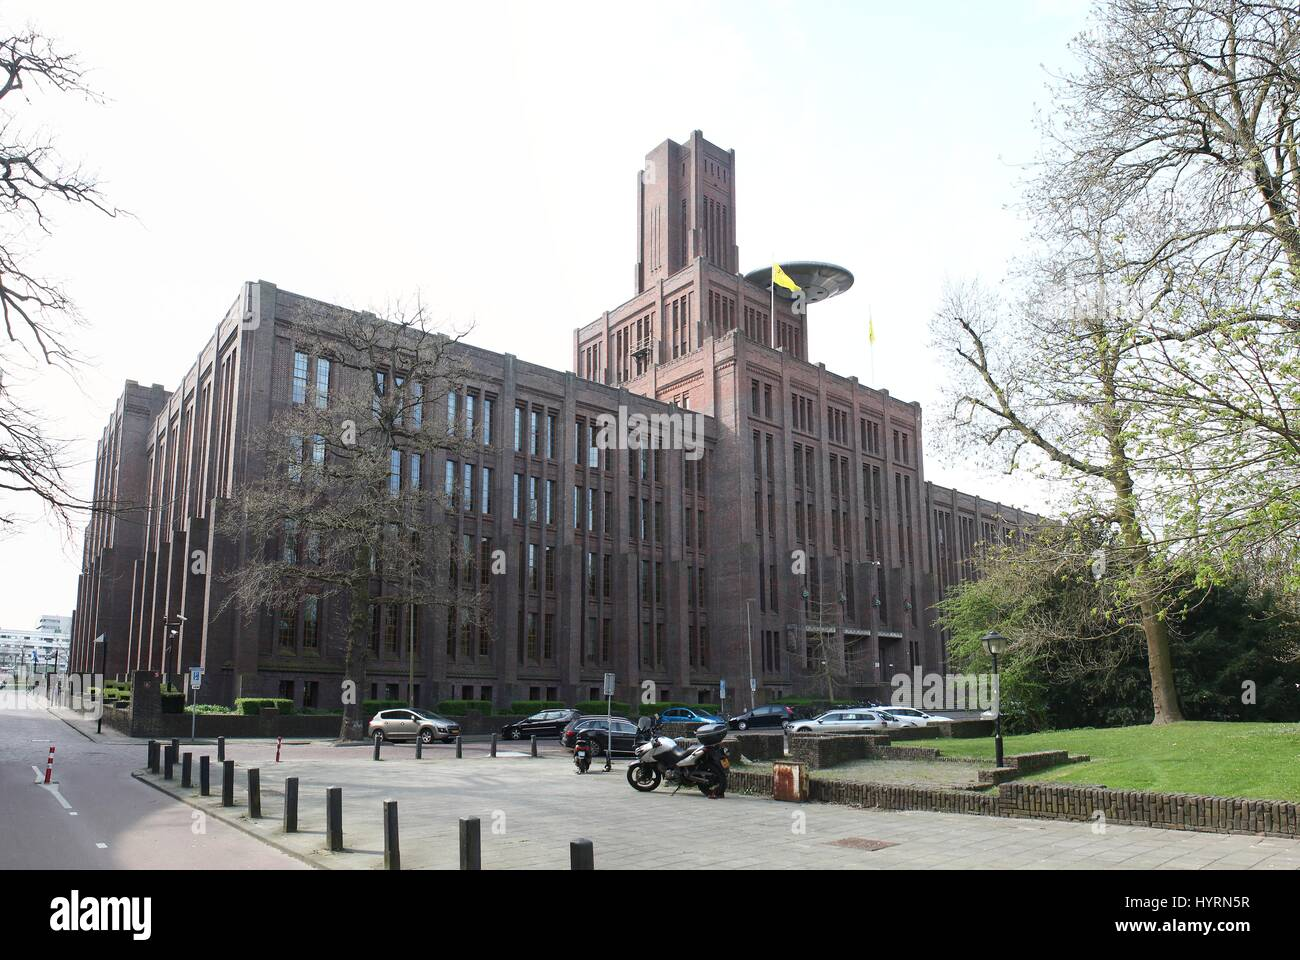 De Inktpot (Inkwell), former headquarters of Dutch Railways (Nederlandse Spoorwegen), nowadays ProRail infrastructral - Stock Image